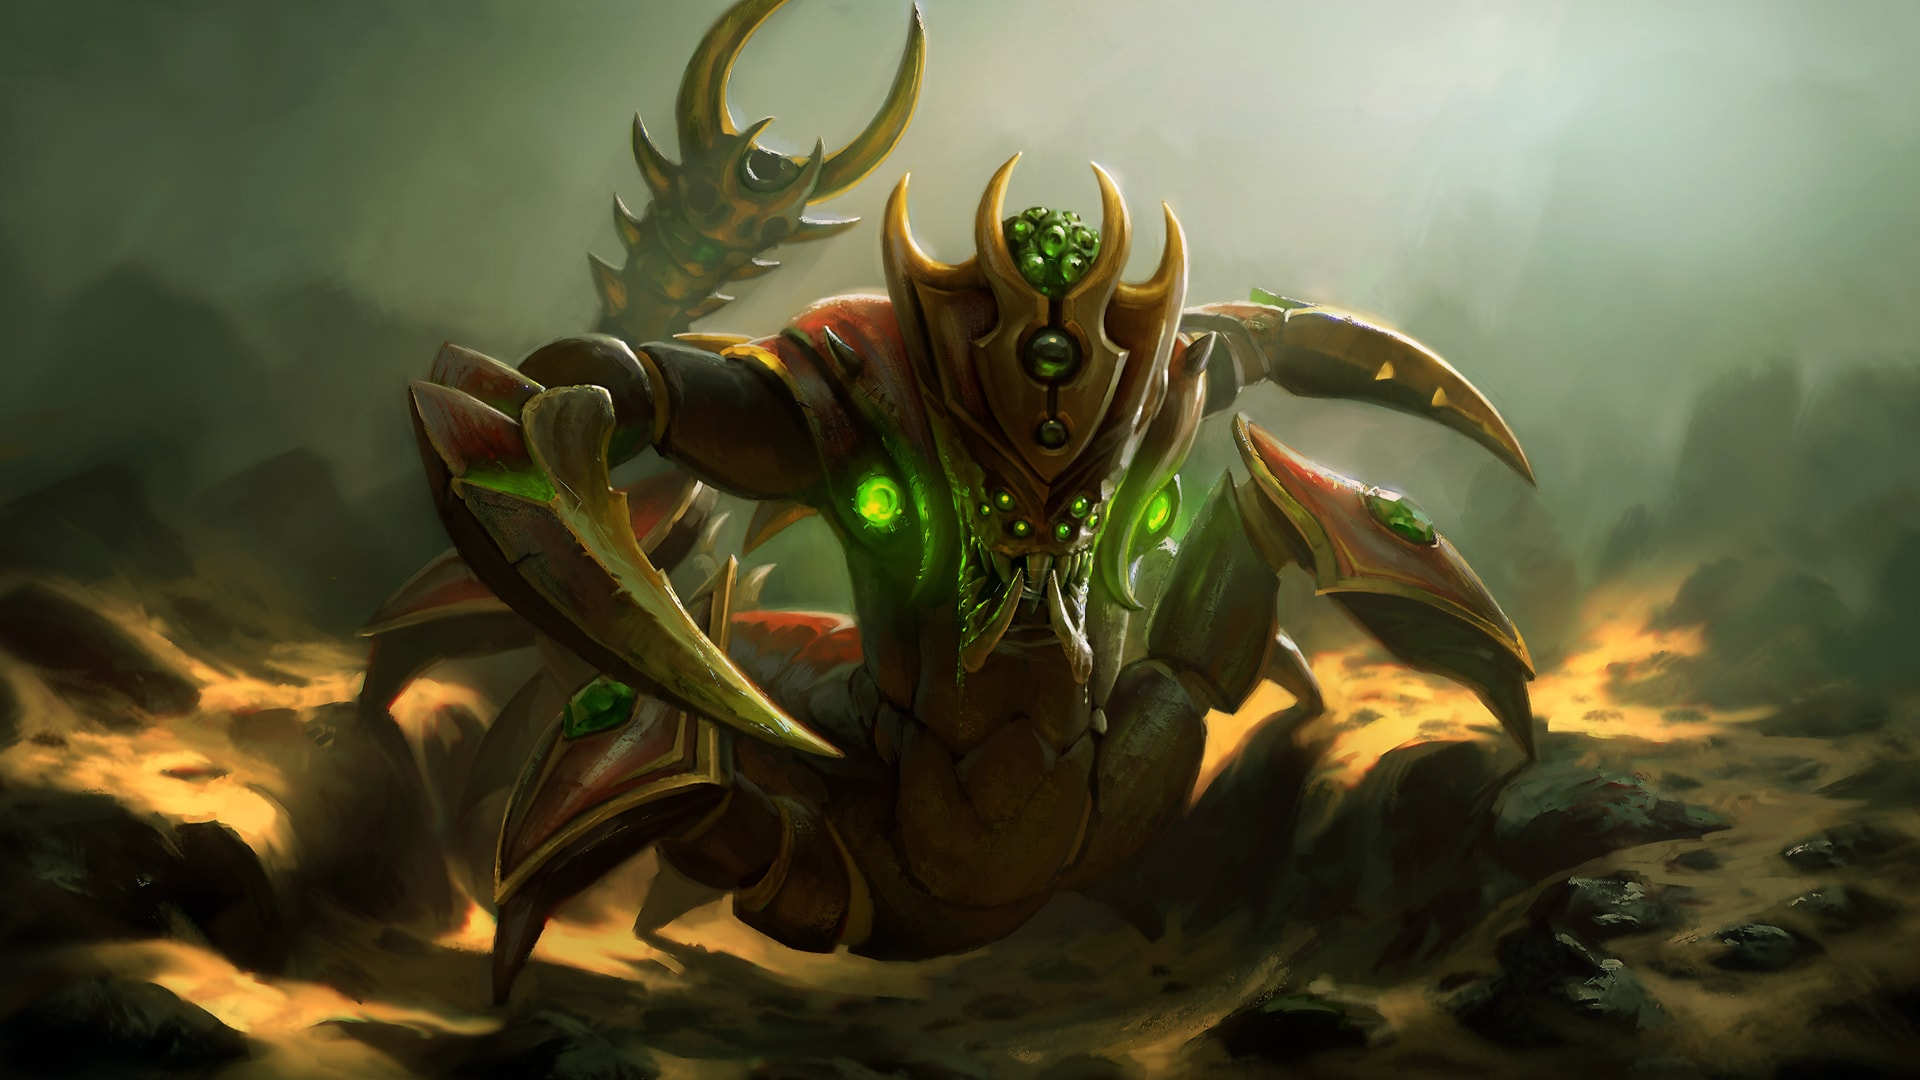 Dota 2 Sand King Wallpaper